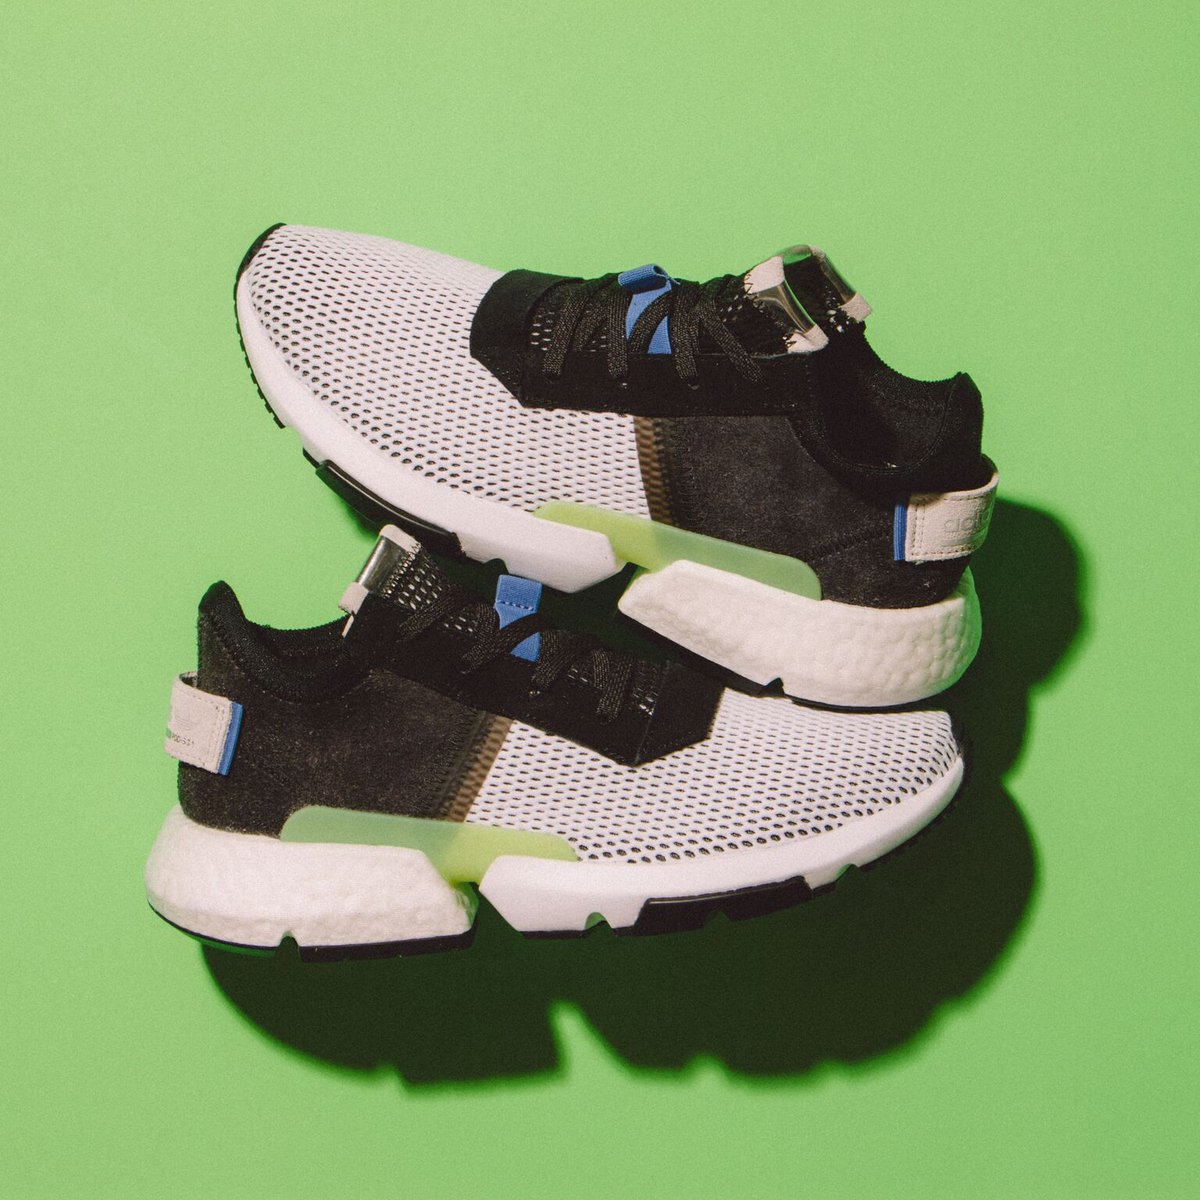 138b2d3dd The adidas POD-S 3.1 and adidas Consortium x Commonwealth ZX 500 RM drop at  all of our shops and online today